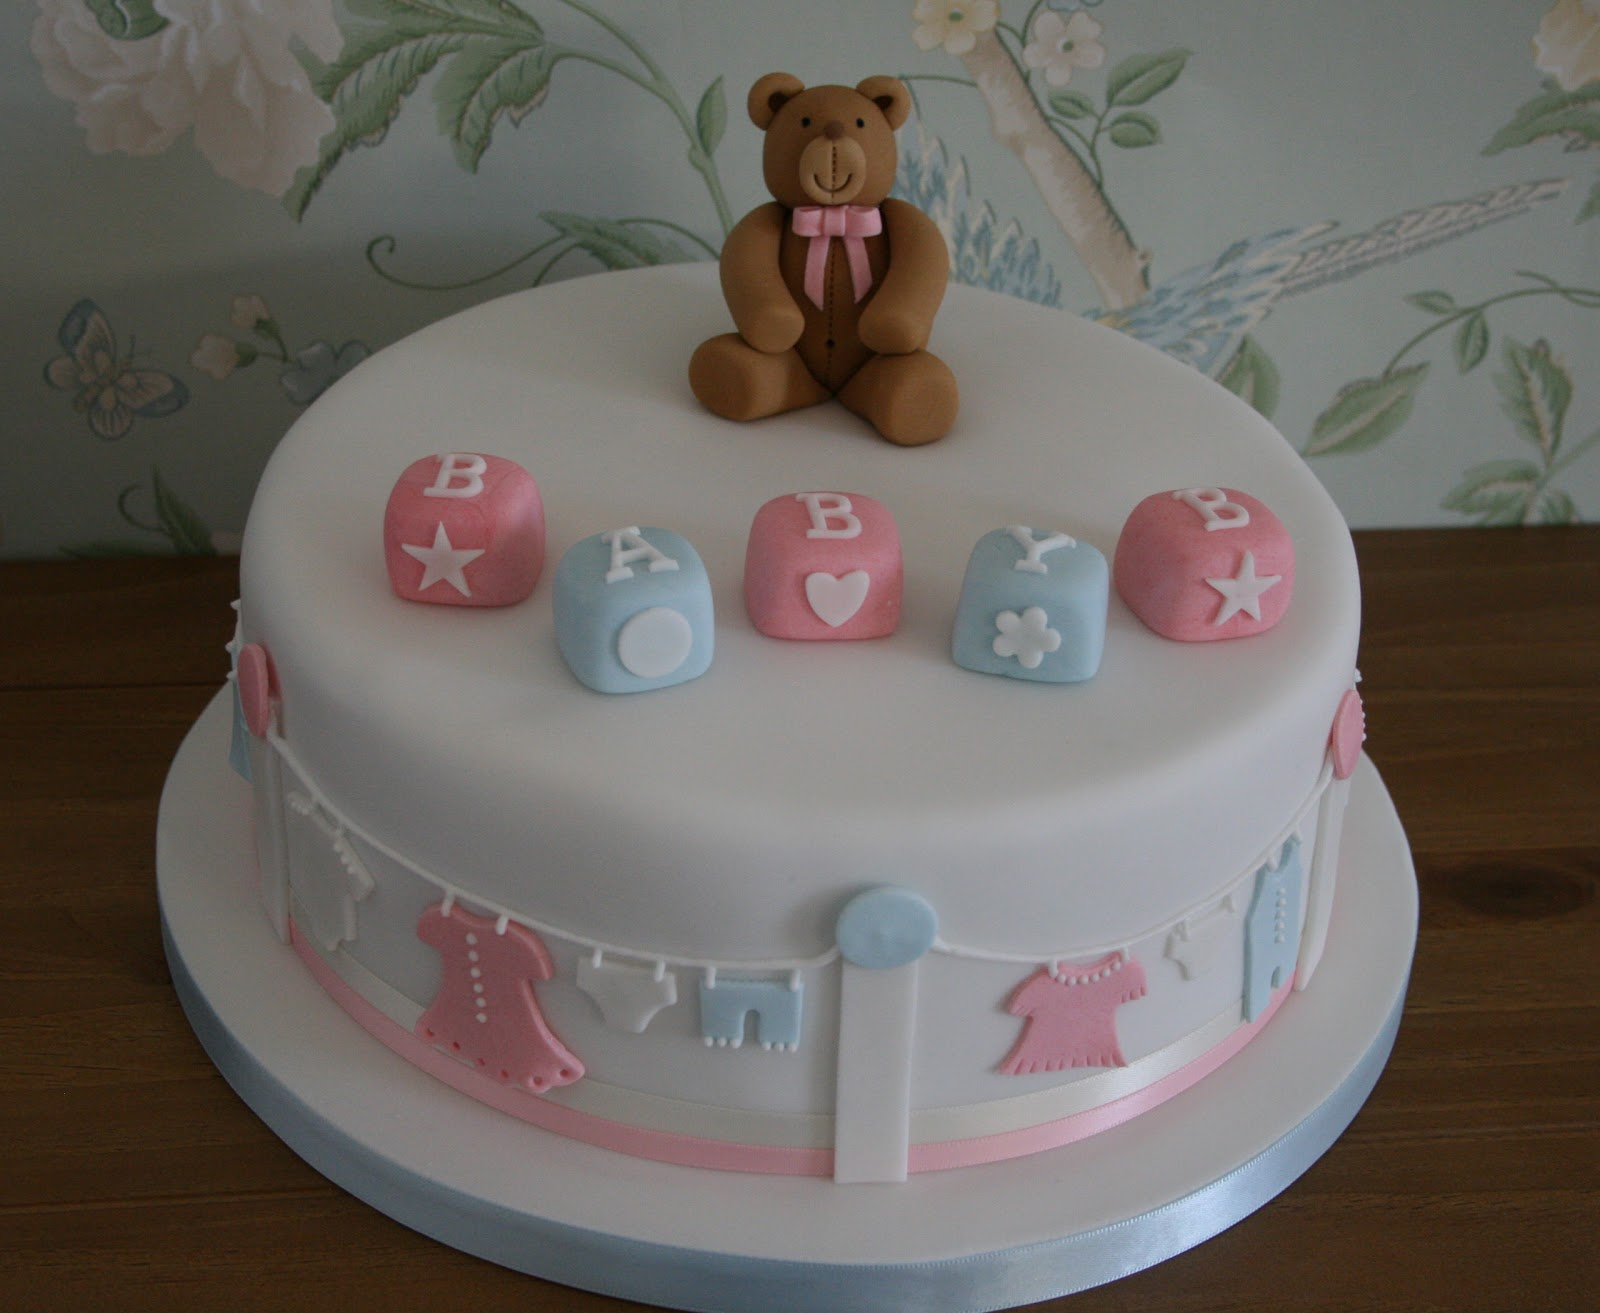 Pictures Of Baby Shower Cake Designs : lauralovescakes...: Baby Shower Cake